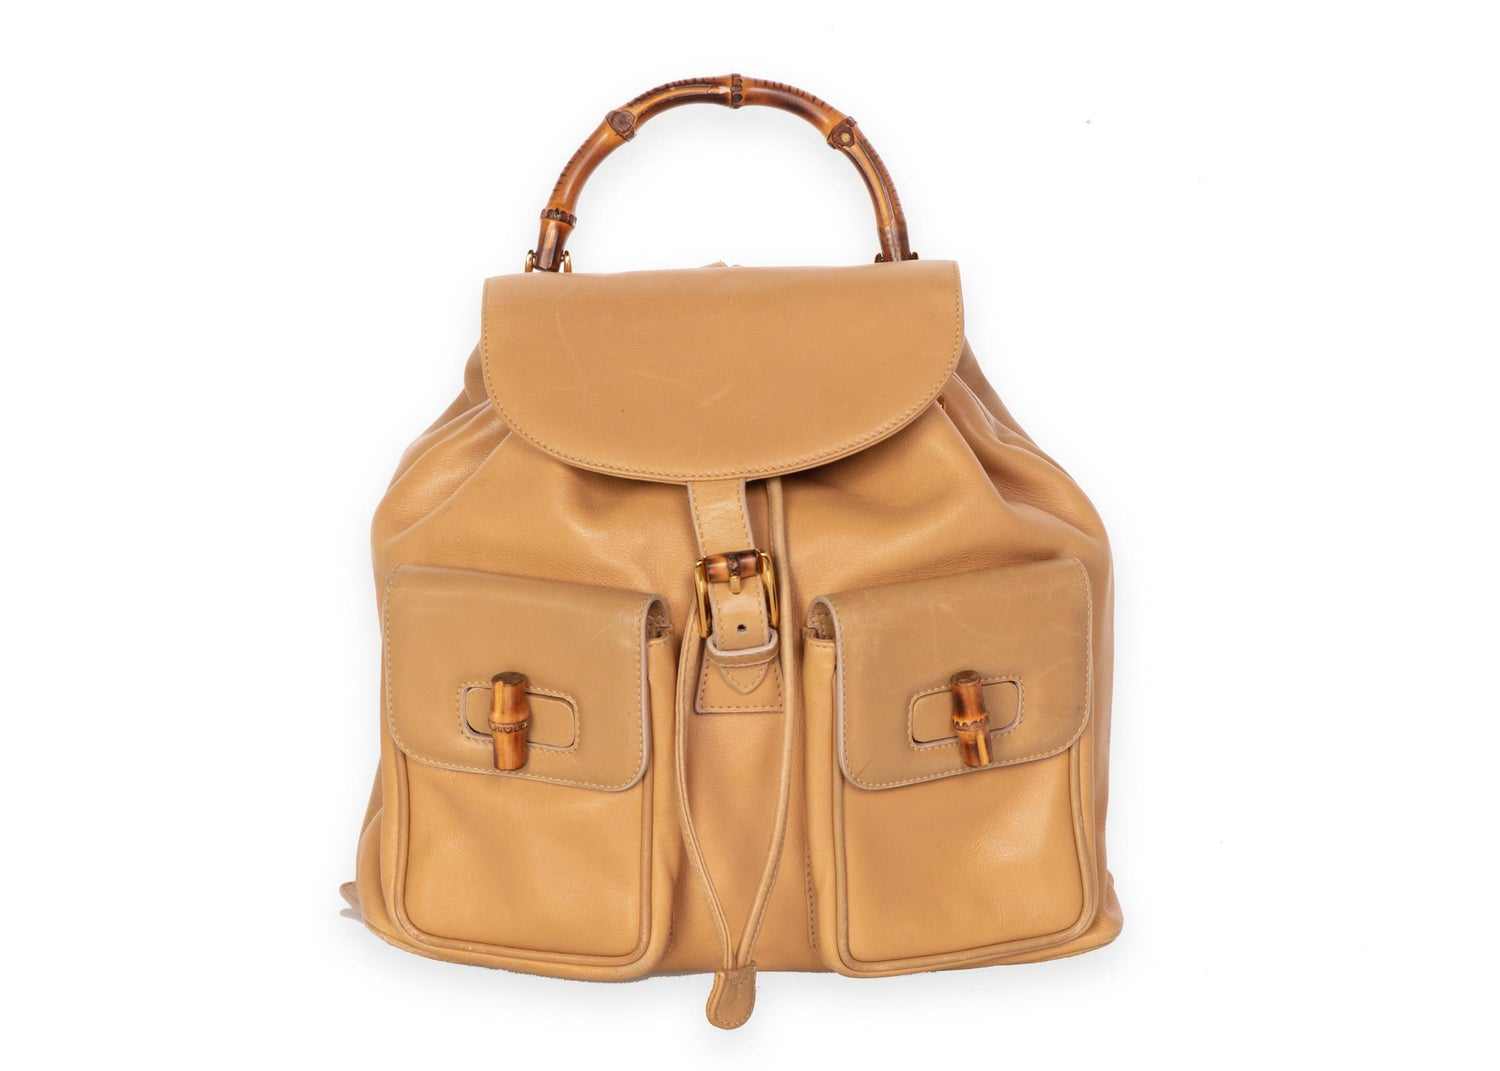 a244aa8a7508 Gucci Vintage Leather and Bamboo Handle Backpack For Sale at 1stdibs